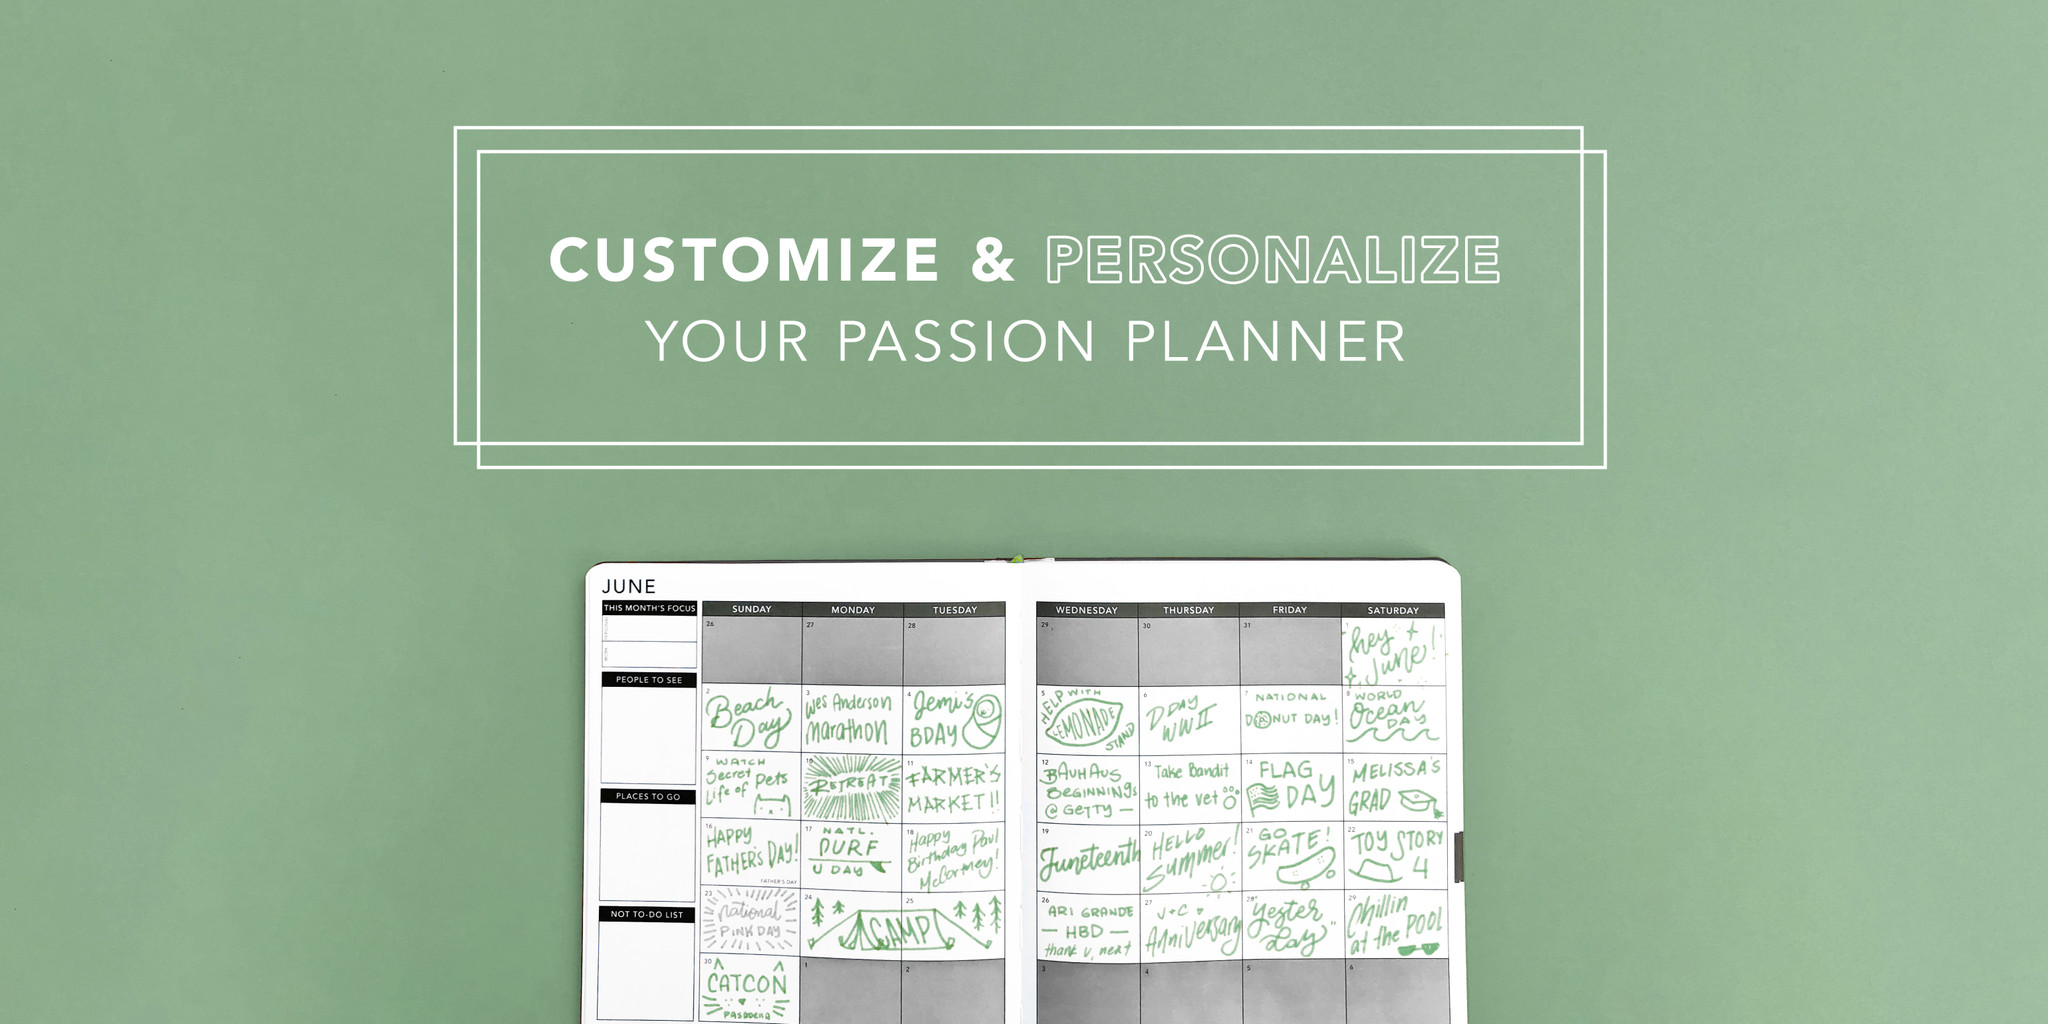 9 Tips to Customize and Personalize Your Passion Planner